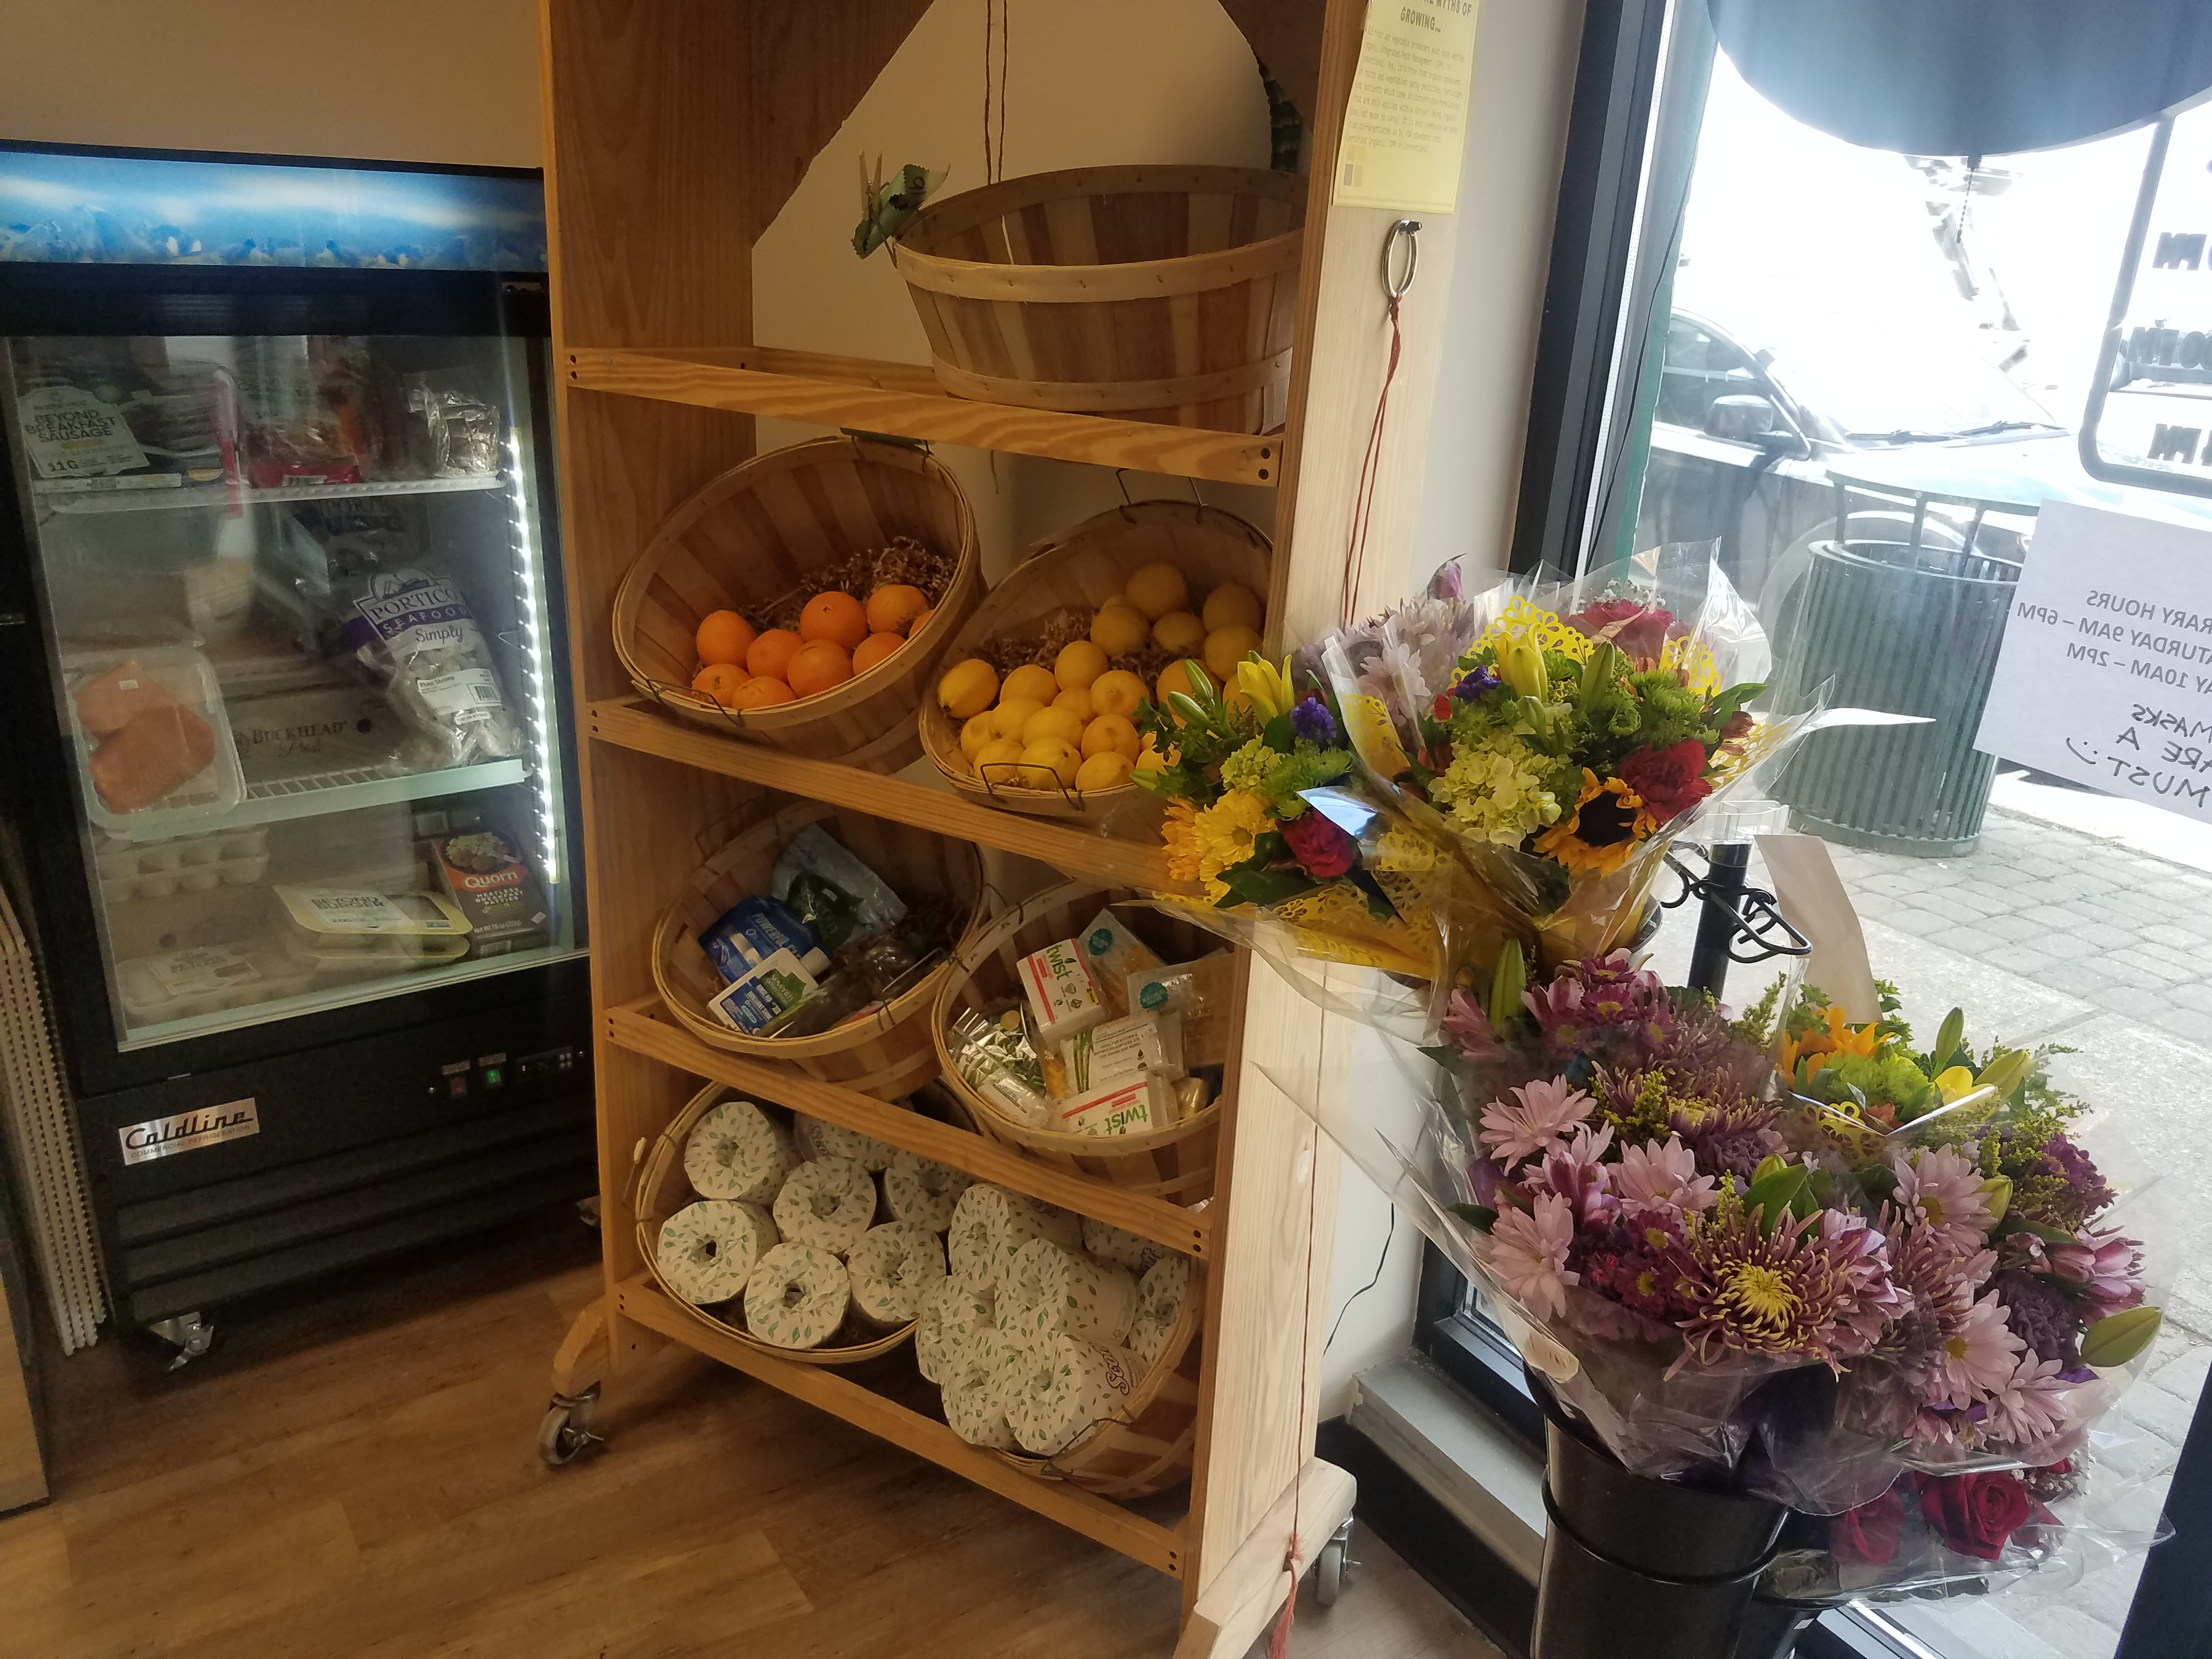 A photo. In the foreground is a metal stand holding multiple bouquets of flowers, in the midground  is a wooden shelf with multiple wicker baskets of fruits and cleaning supplies, and in the background is a freezer. The freezer has a glass door and inside it there are various frozen fishes and meats.